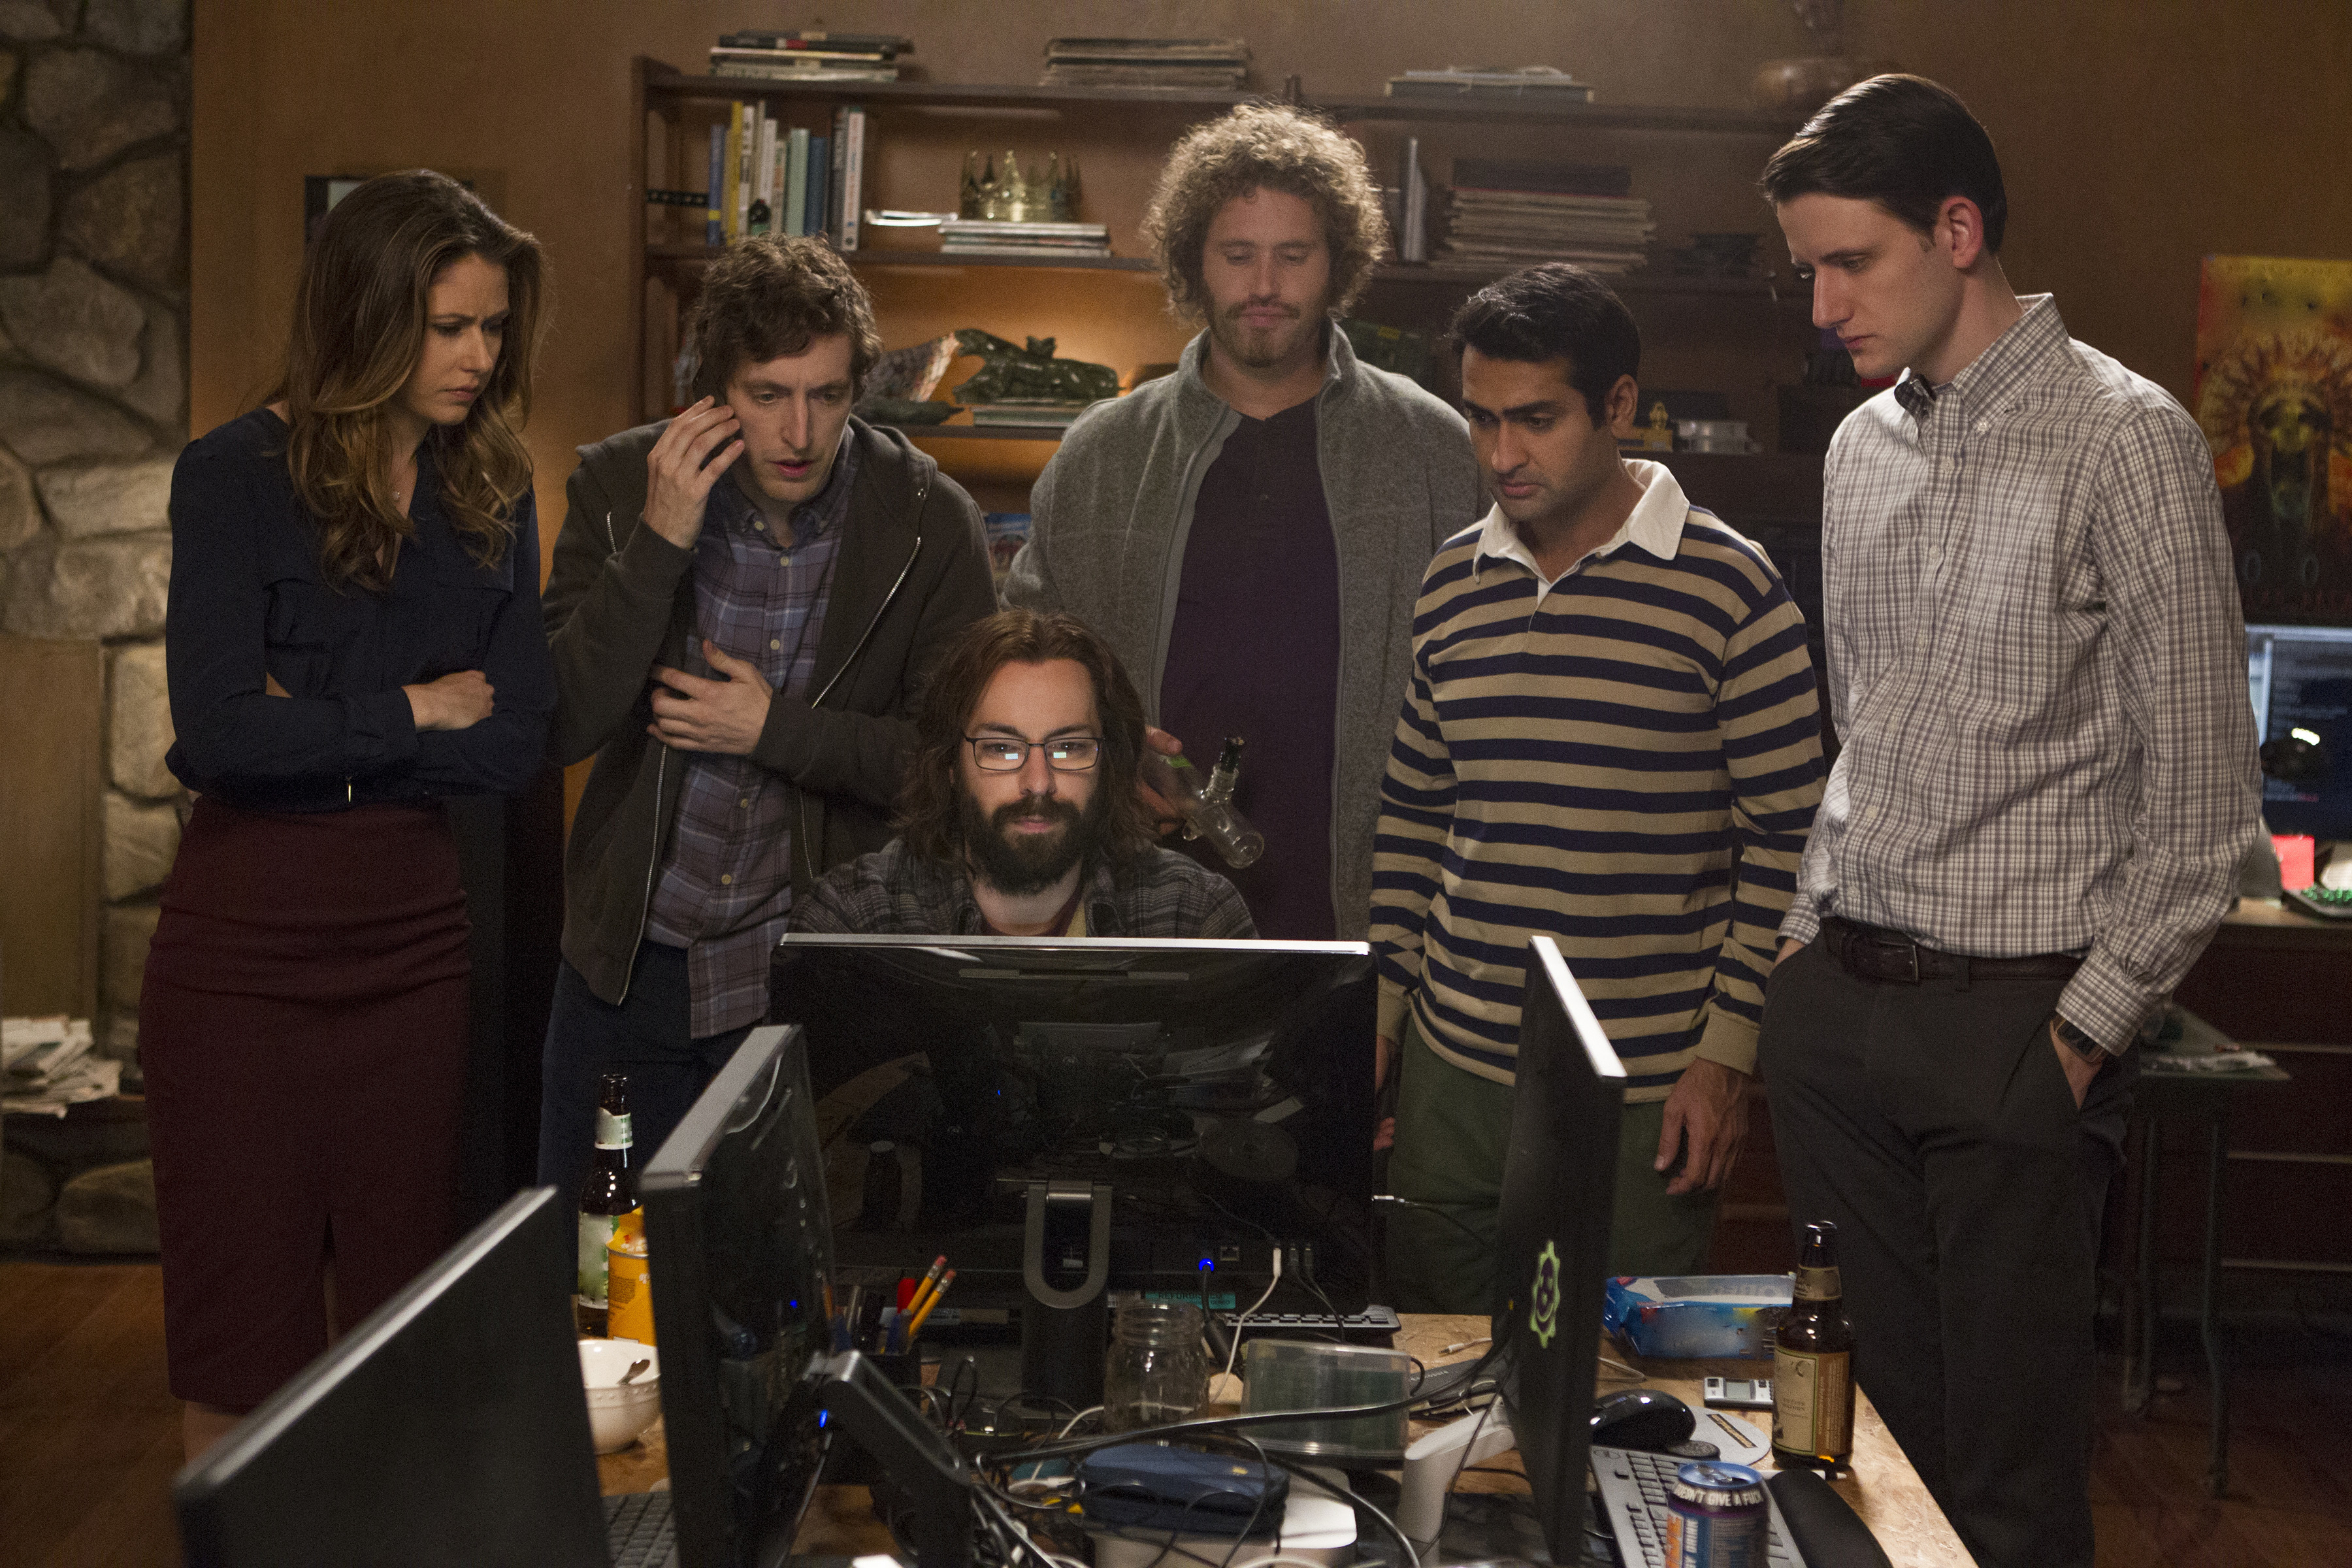 Silicon Valley is a good example of what proper satire can accomplish